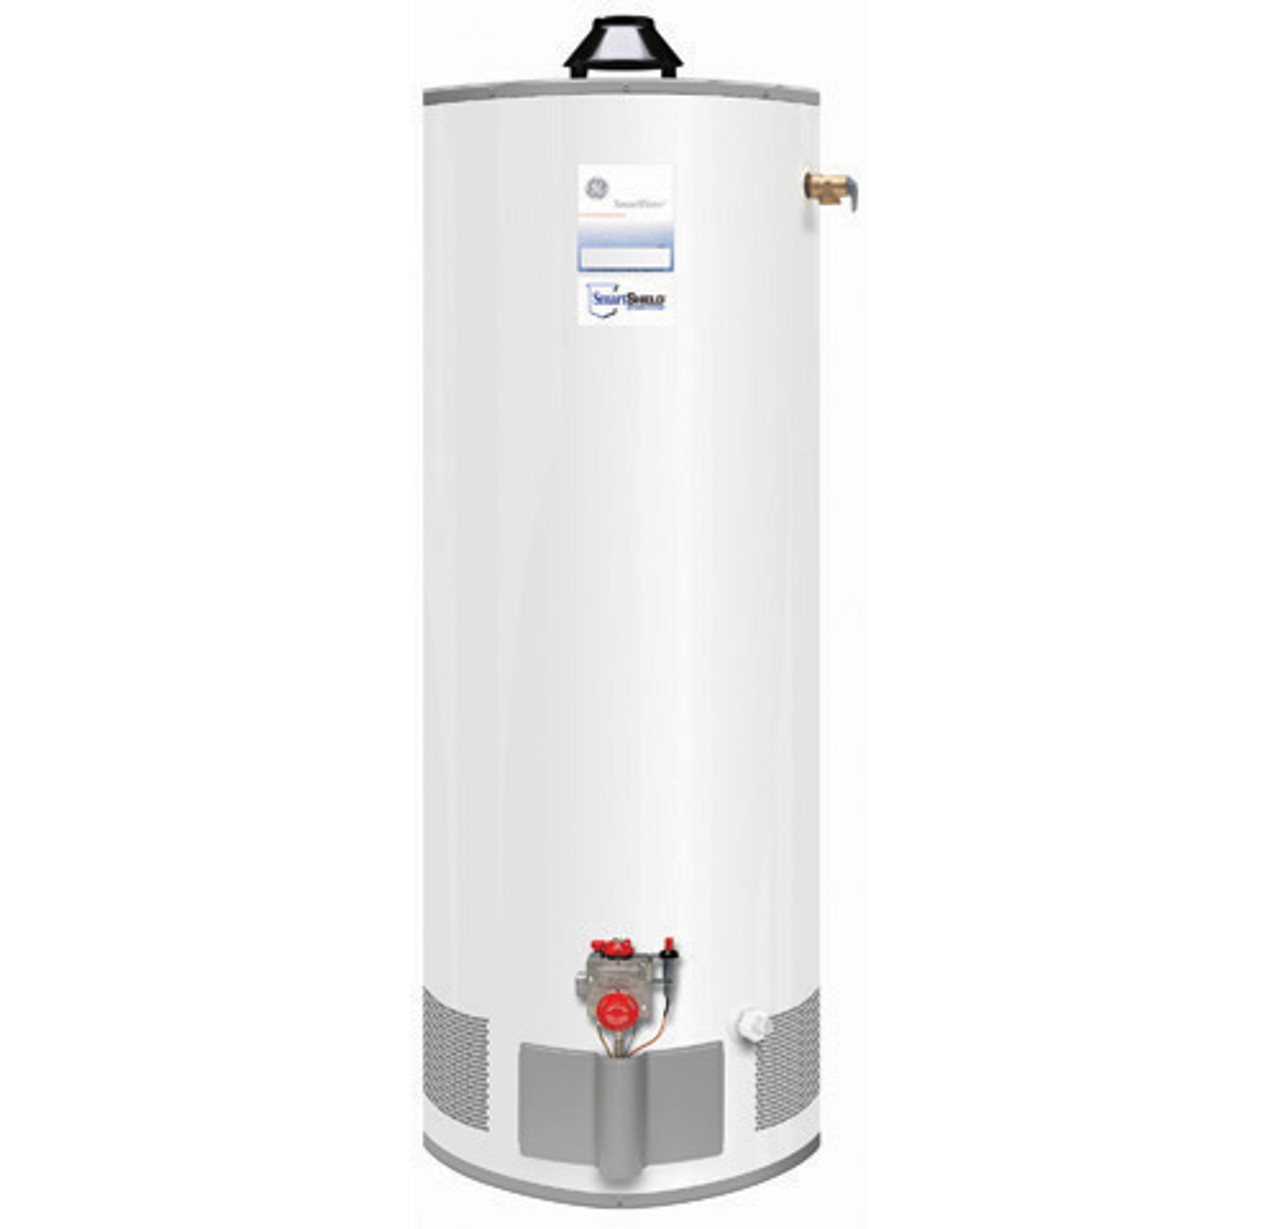 Ge Water Heater Wiring Diagram from cdn11.bigcommerce.com